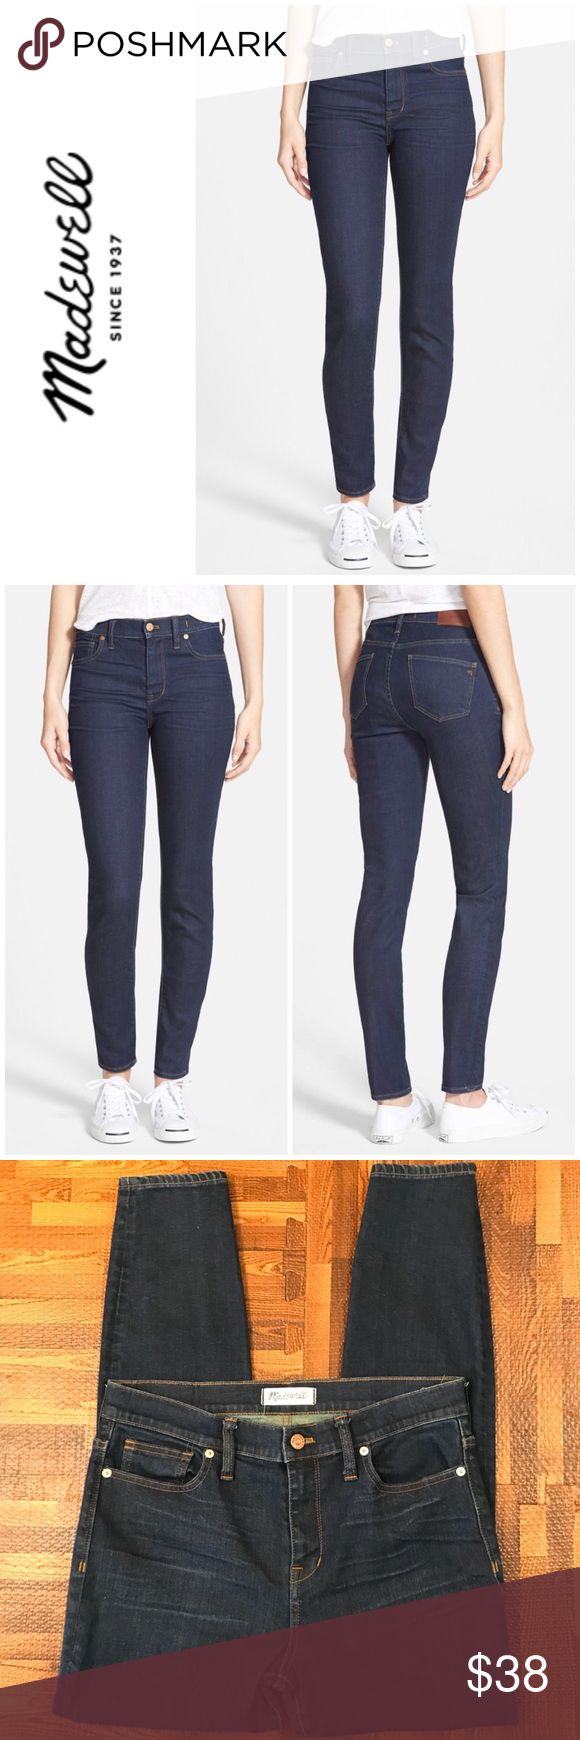 """Madewell High Riser Skinny Jeans """"Lean and sexy with a 9"""" rise (right in '70s rock-muse territory), this one's legs-for-days look and supersleek effect come from using some of the best denim in the world""""  * Premium 92% cotton/6% poly/2% spandex  * Dark indigo wash with a lovingly worn-in look. * Copper button, matte silver rivets, contrast stitching. * Sit above hip, fitted through hip and thigh, with a slim leg. * Front rise: 9""""; inseam: 27""""leg opening for size 25: 10"""". Excellent…"""